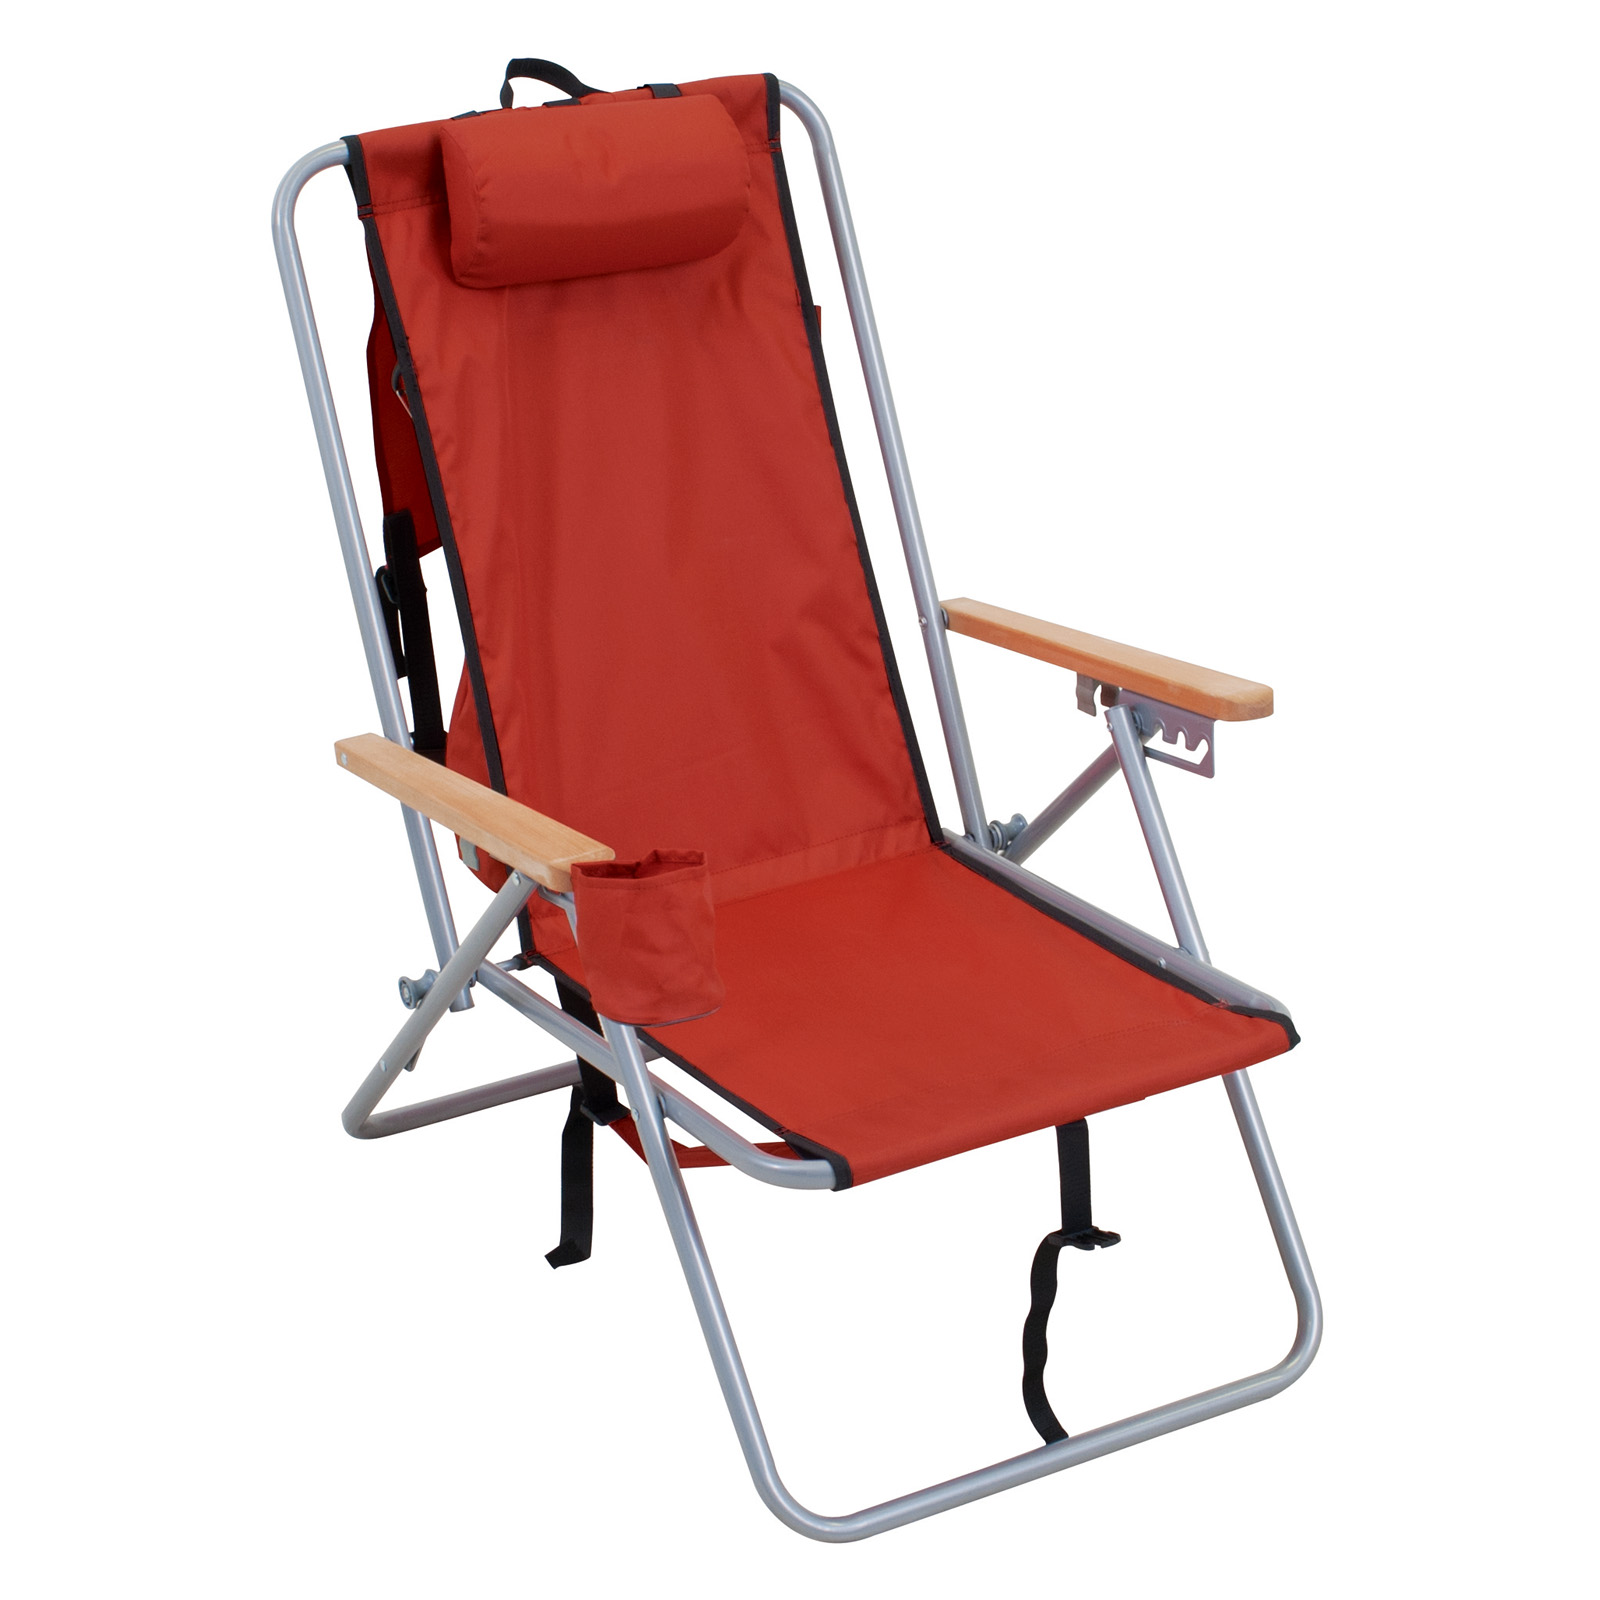 deckchair folding festival low pool chair beach camping yello picnic